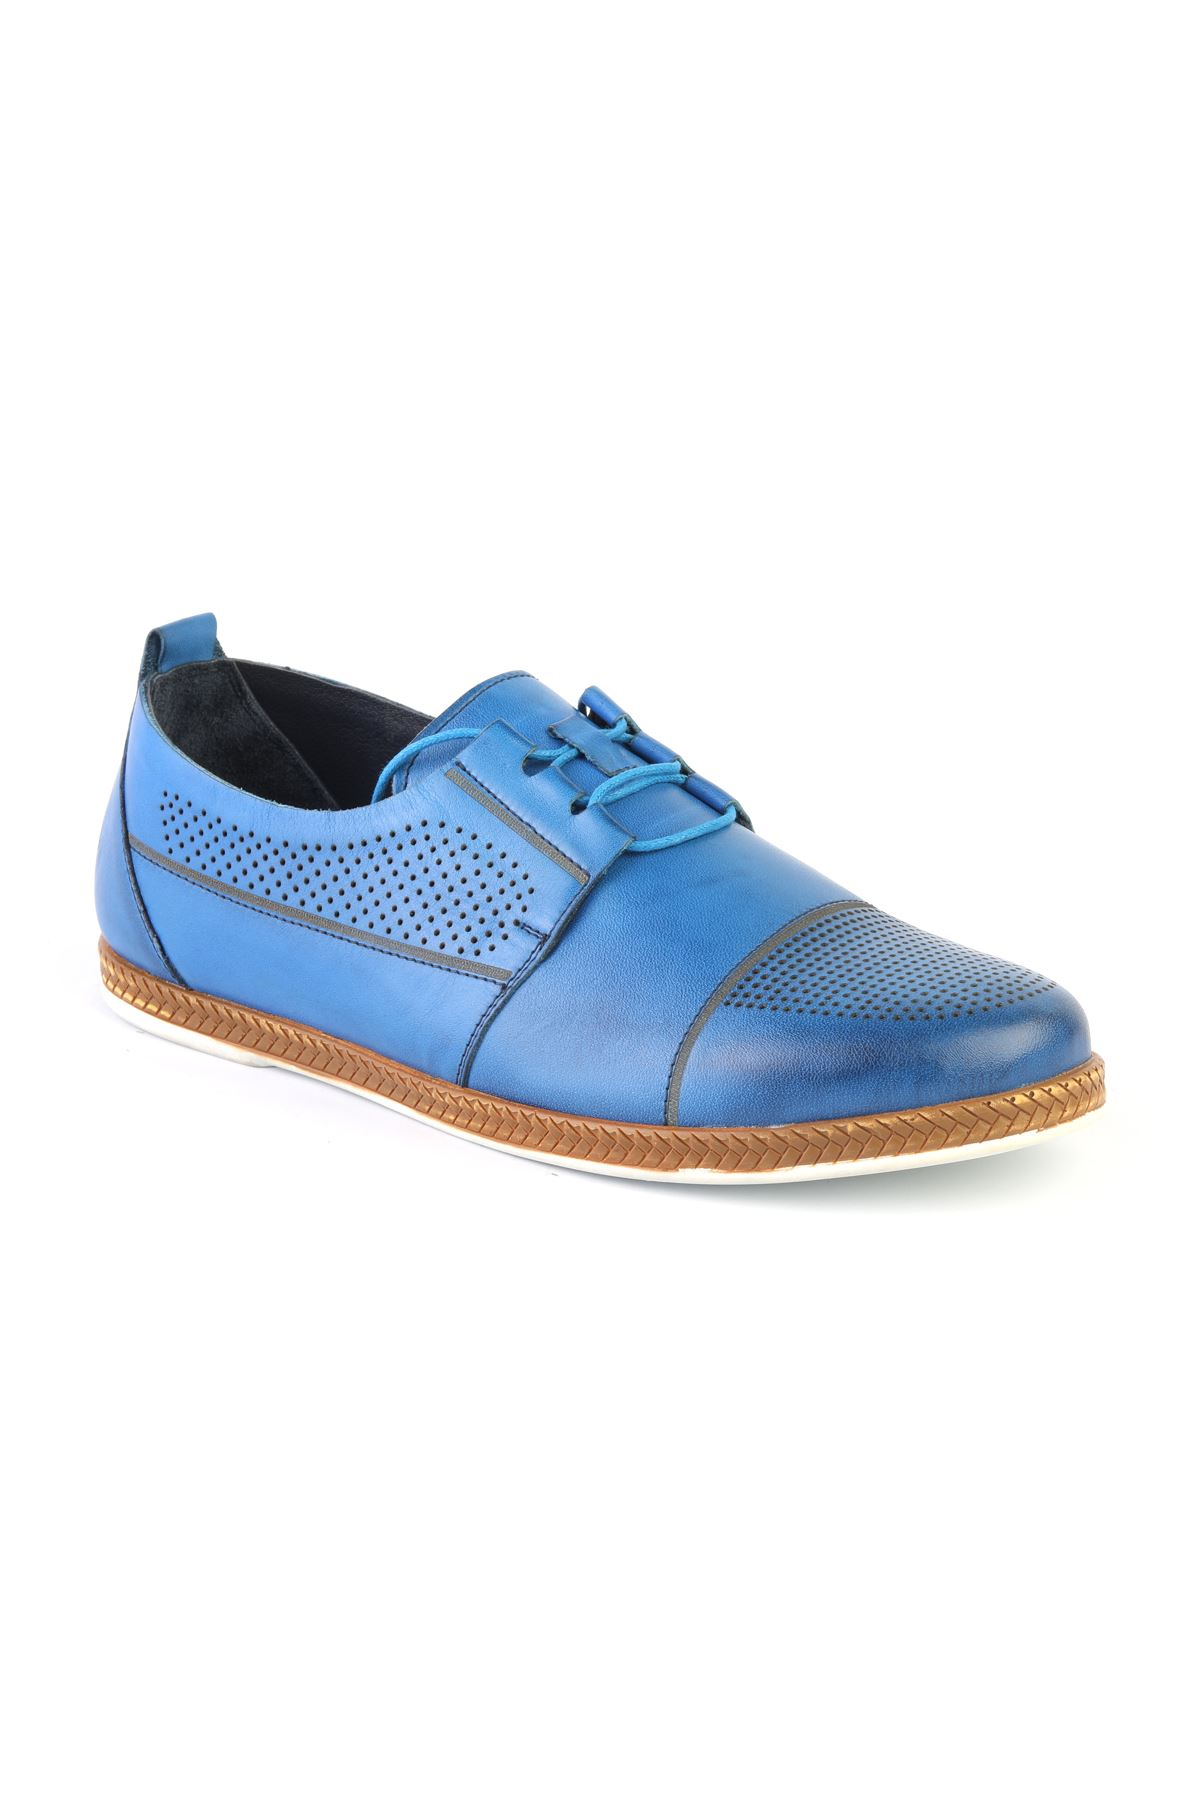 Libero T1173 Blue Daily Casual Shoes